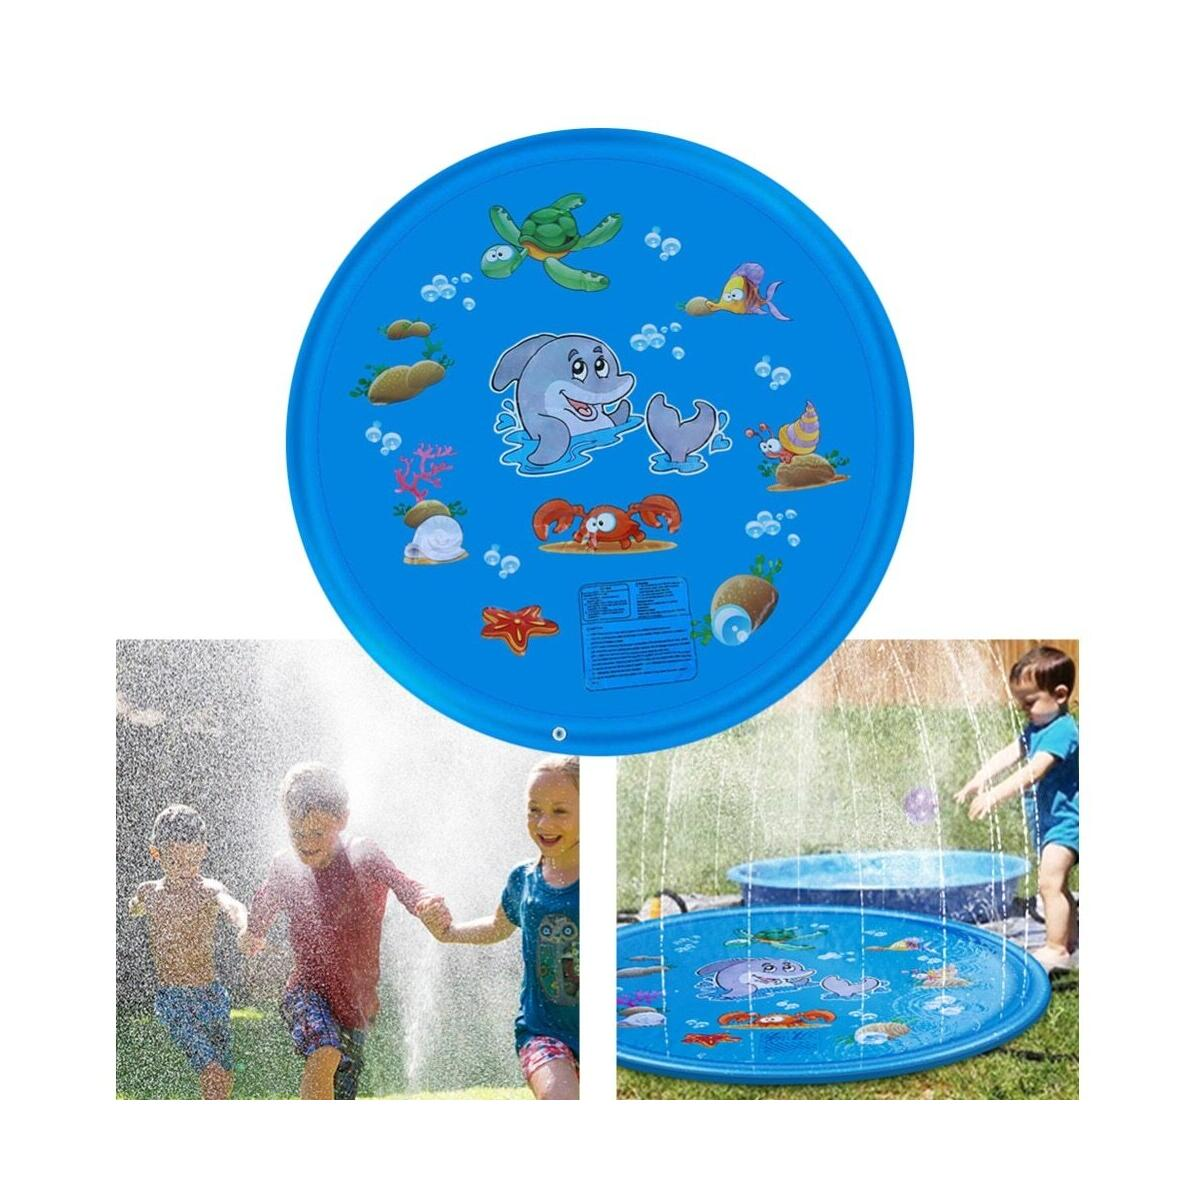 Summer Outdoor Beach Inflatable Playmat Cold Water Spray Kids Sprinkler Play Game Pad Mat Tub Swiming Pool Toys